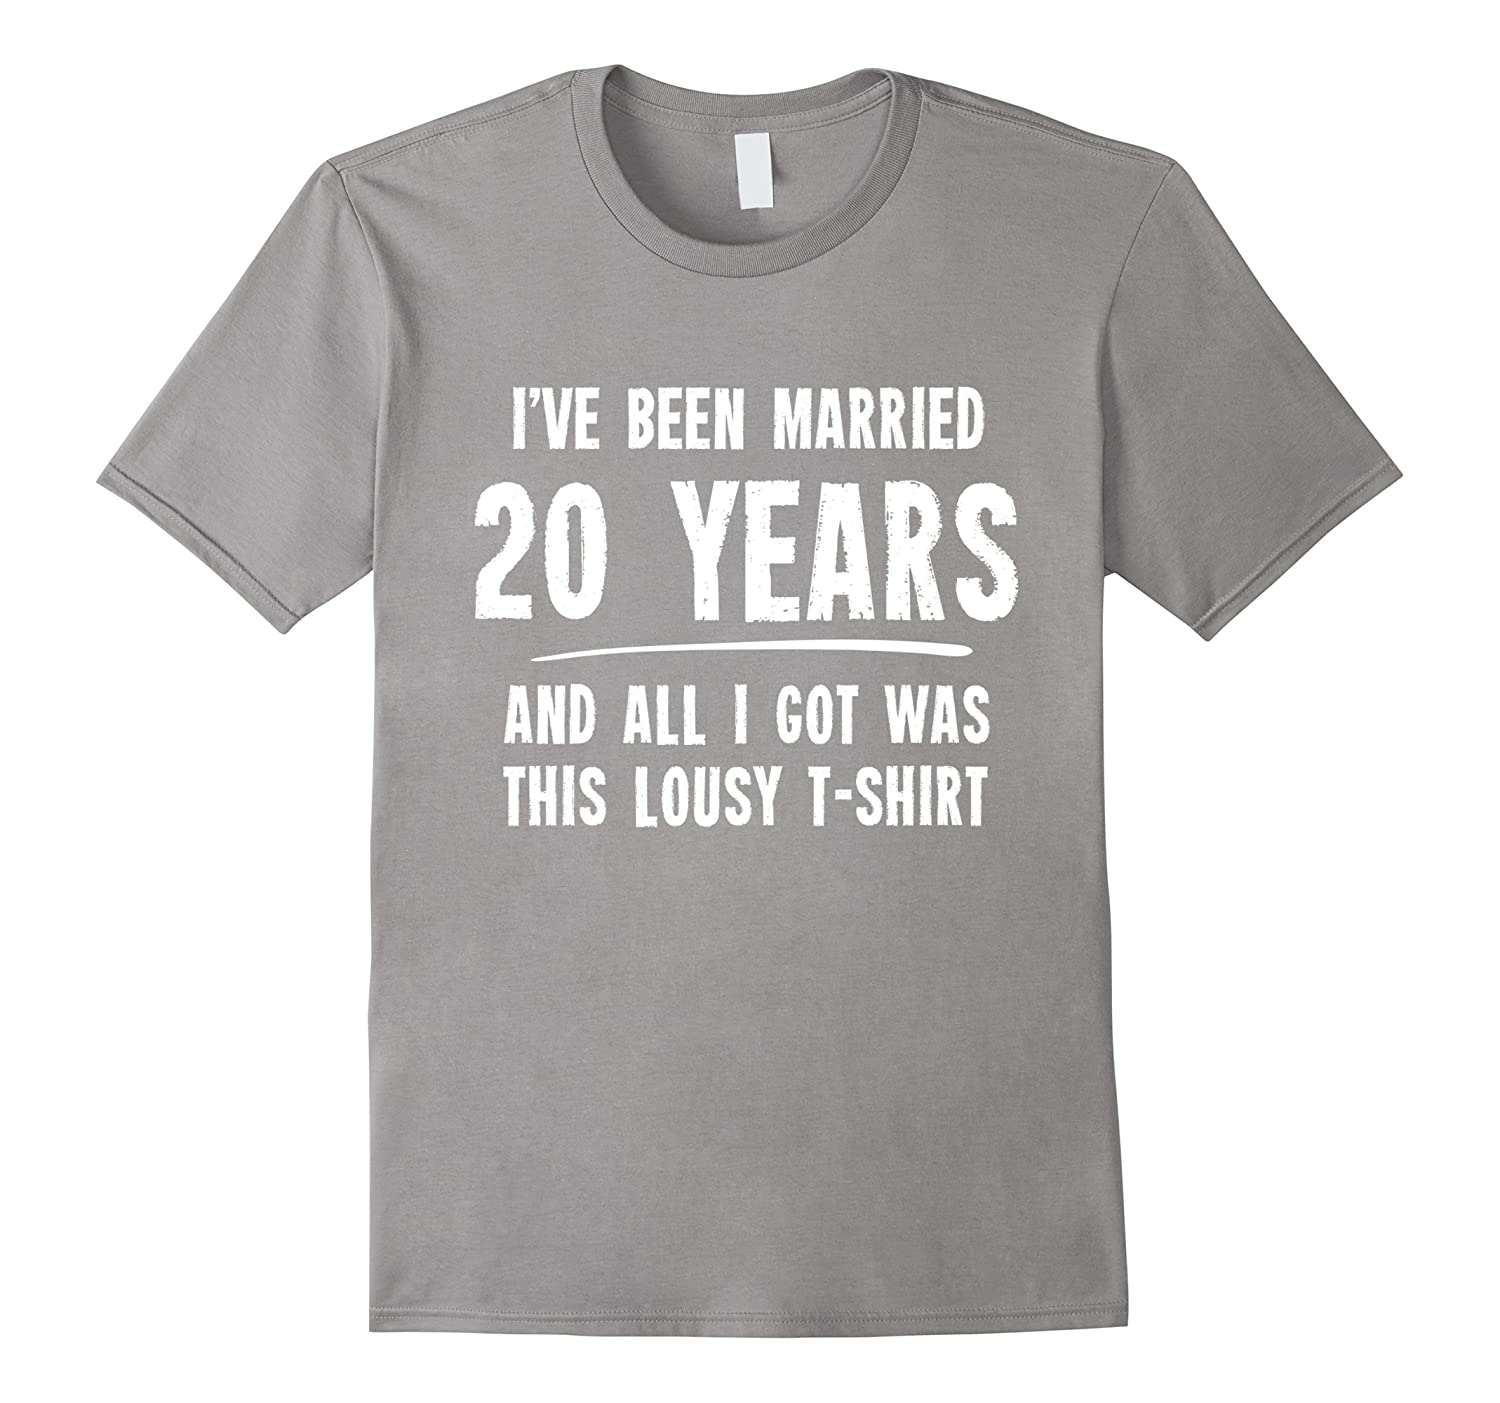 20 Years Wedding Anniversary Gift: 20 Year Anniversary Gift 20th Wedding Married Funny T